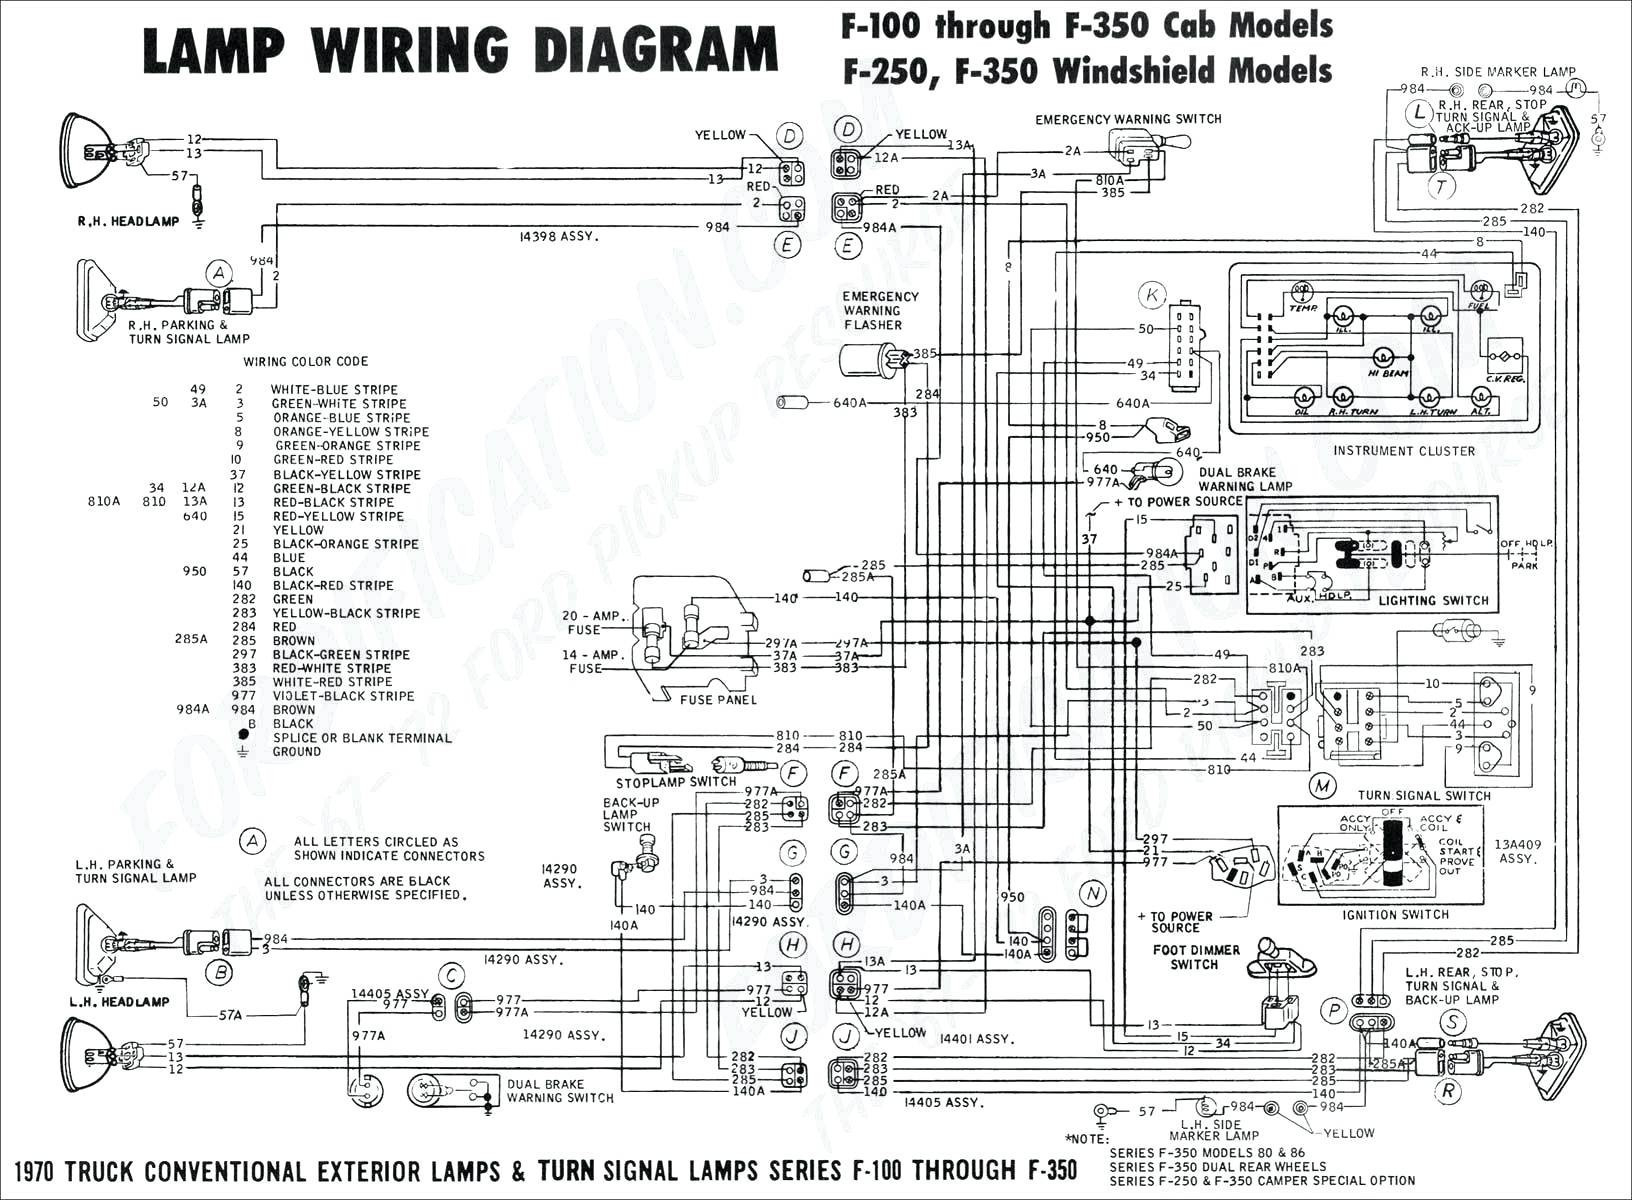 volvo ems2 wiring diagram Download-bwd relay wiring diagram inspirationa volvo penta wiring harnesses volvo penta brand engine wire 11-h